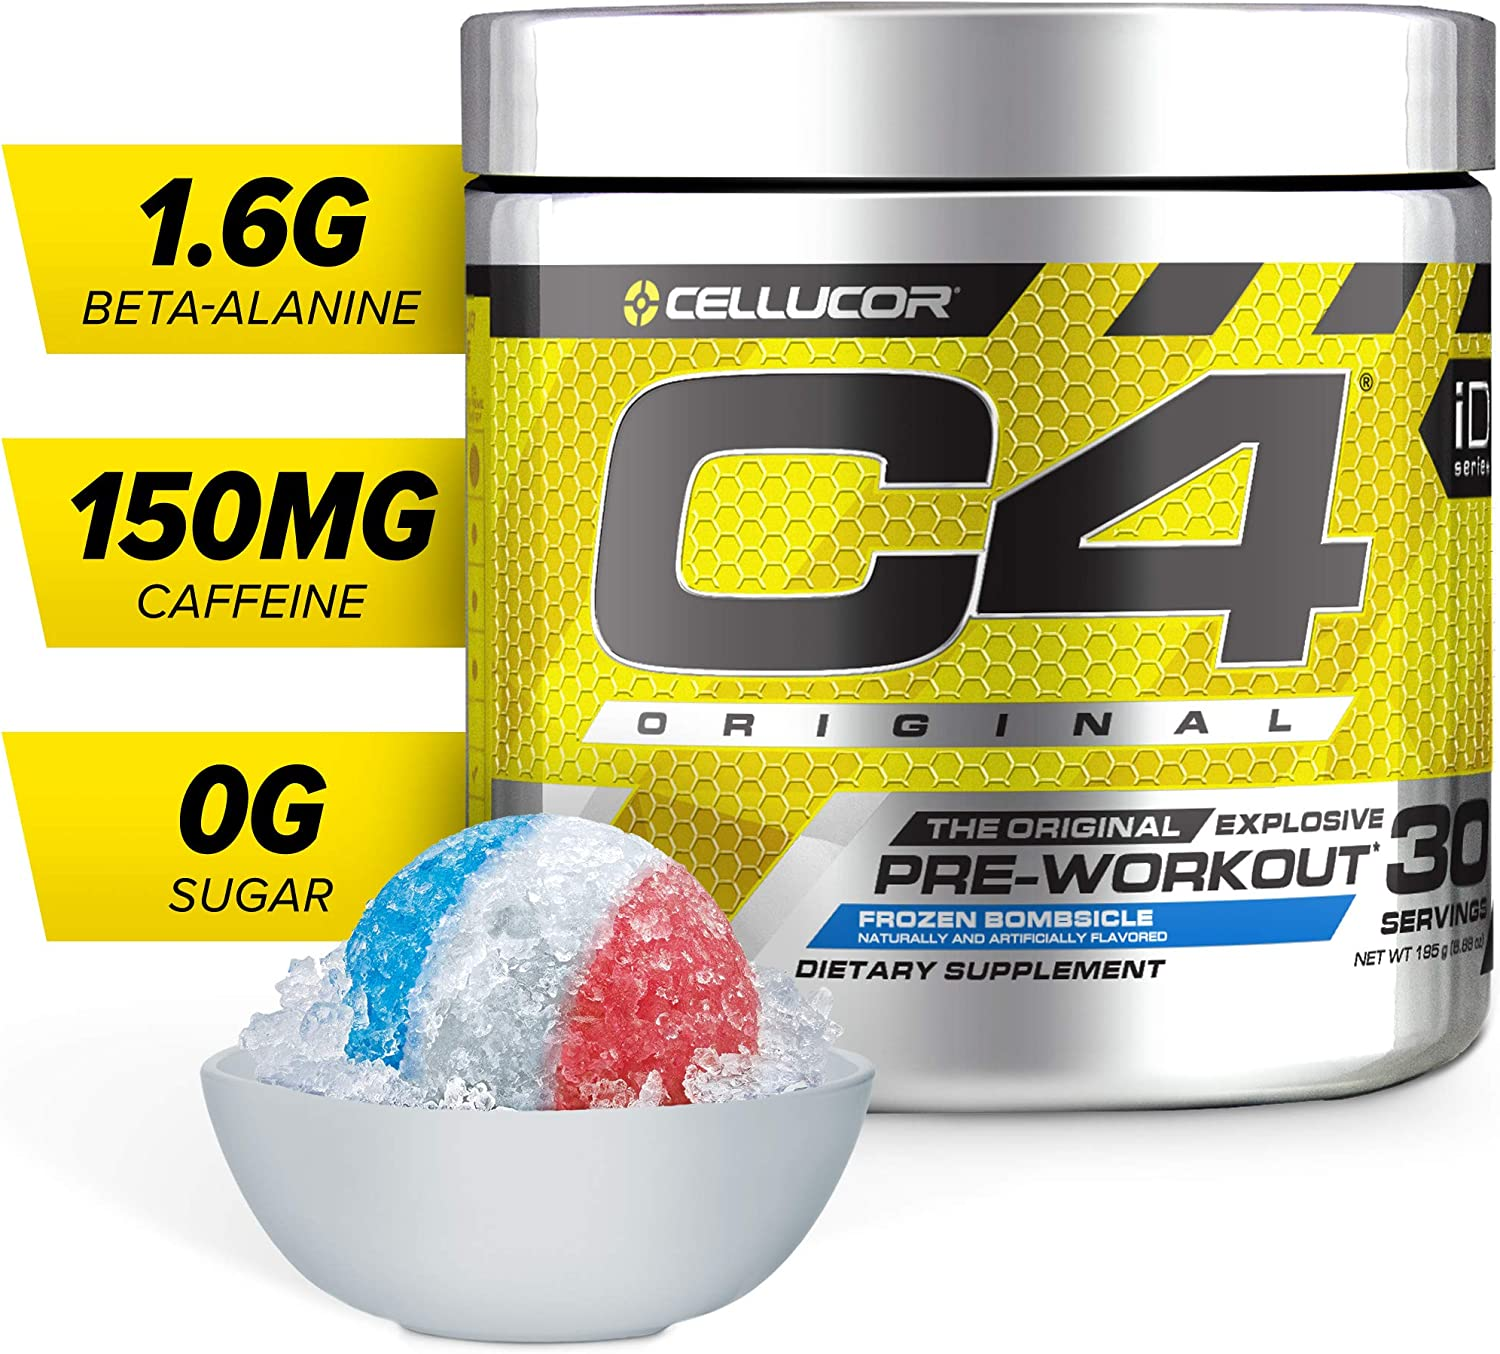 C4 Original Pre Workout Powder Frozen Bombsicle Sugar Free Preworkout Energy Supplement for Men Women 150mg Caffeine beta Alanine Creatine 30 Servings